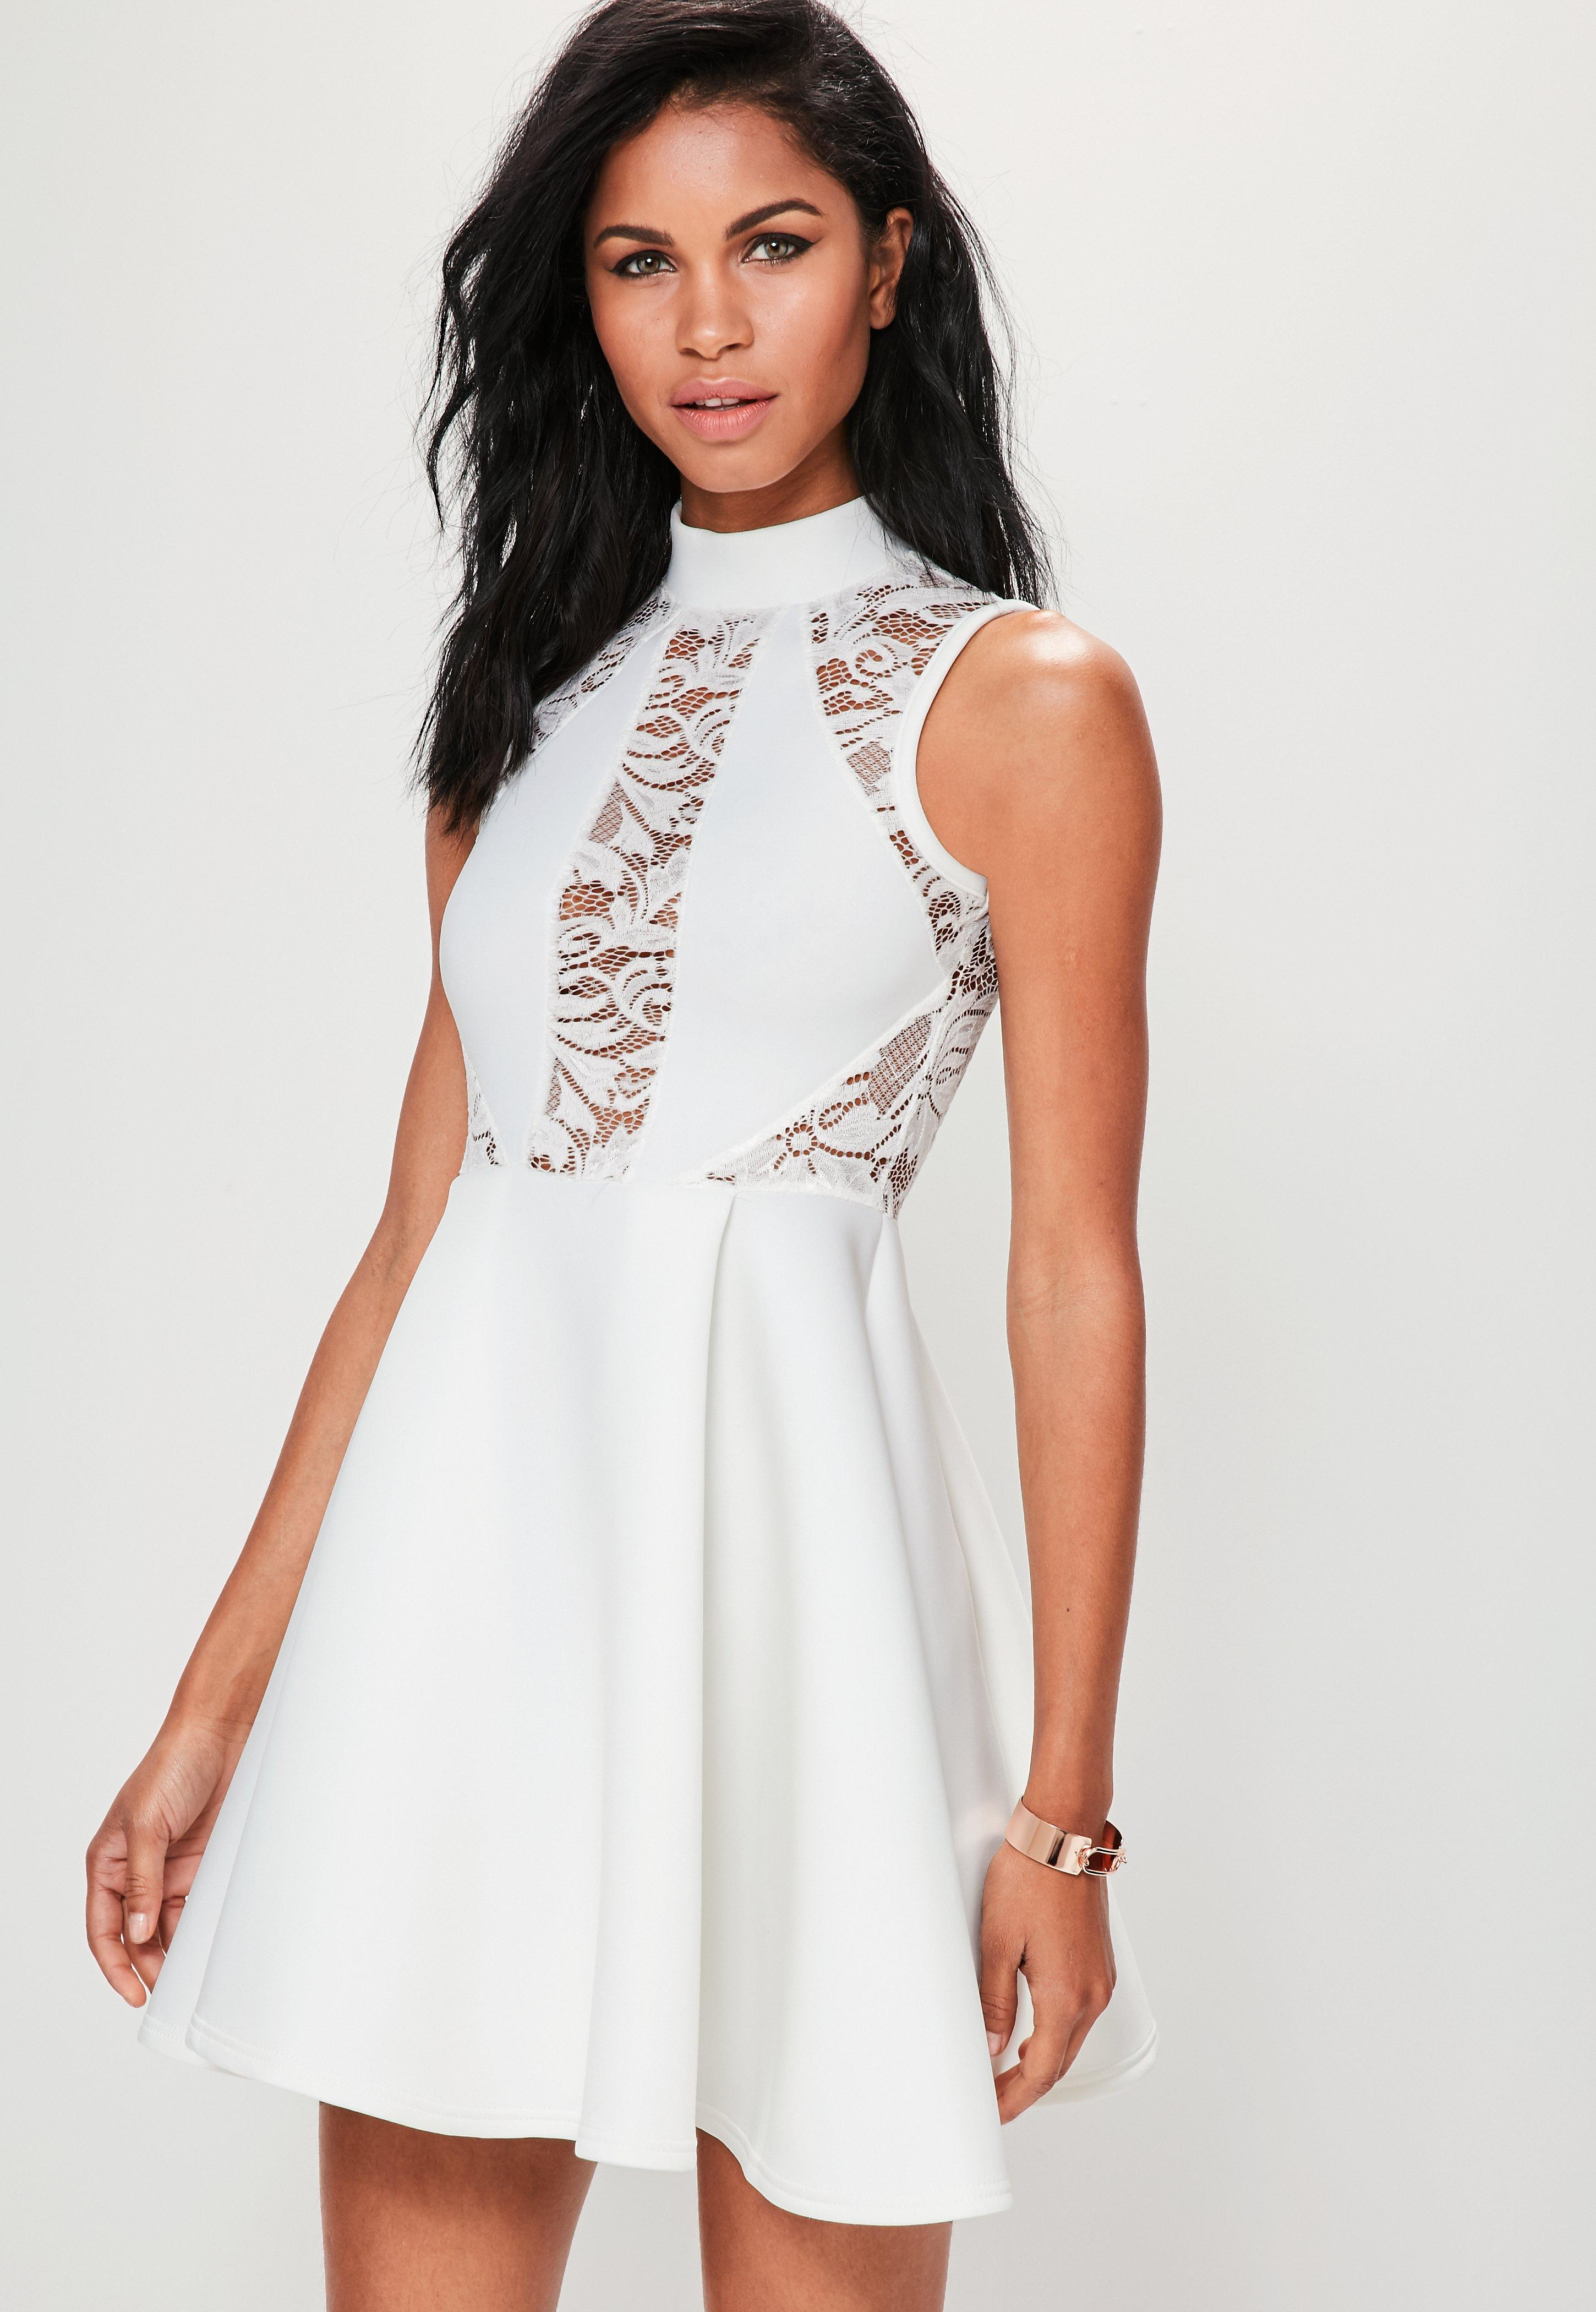 Robe patineuse blanche chic